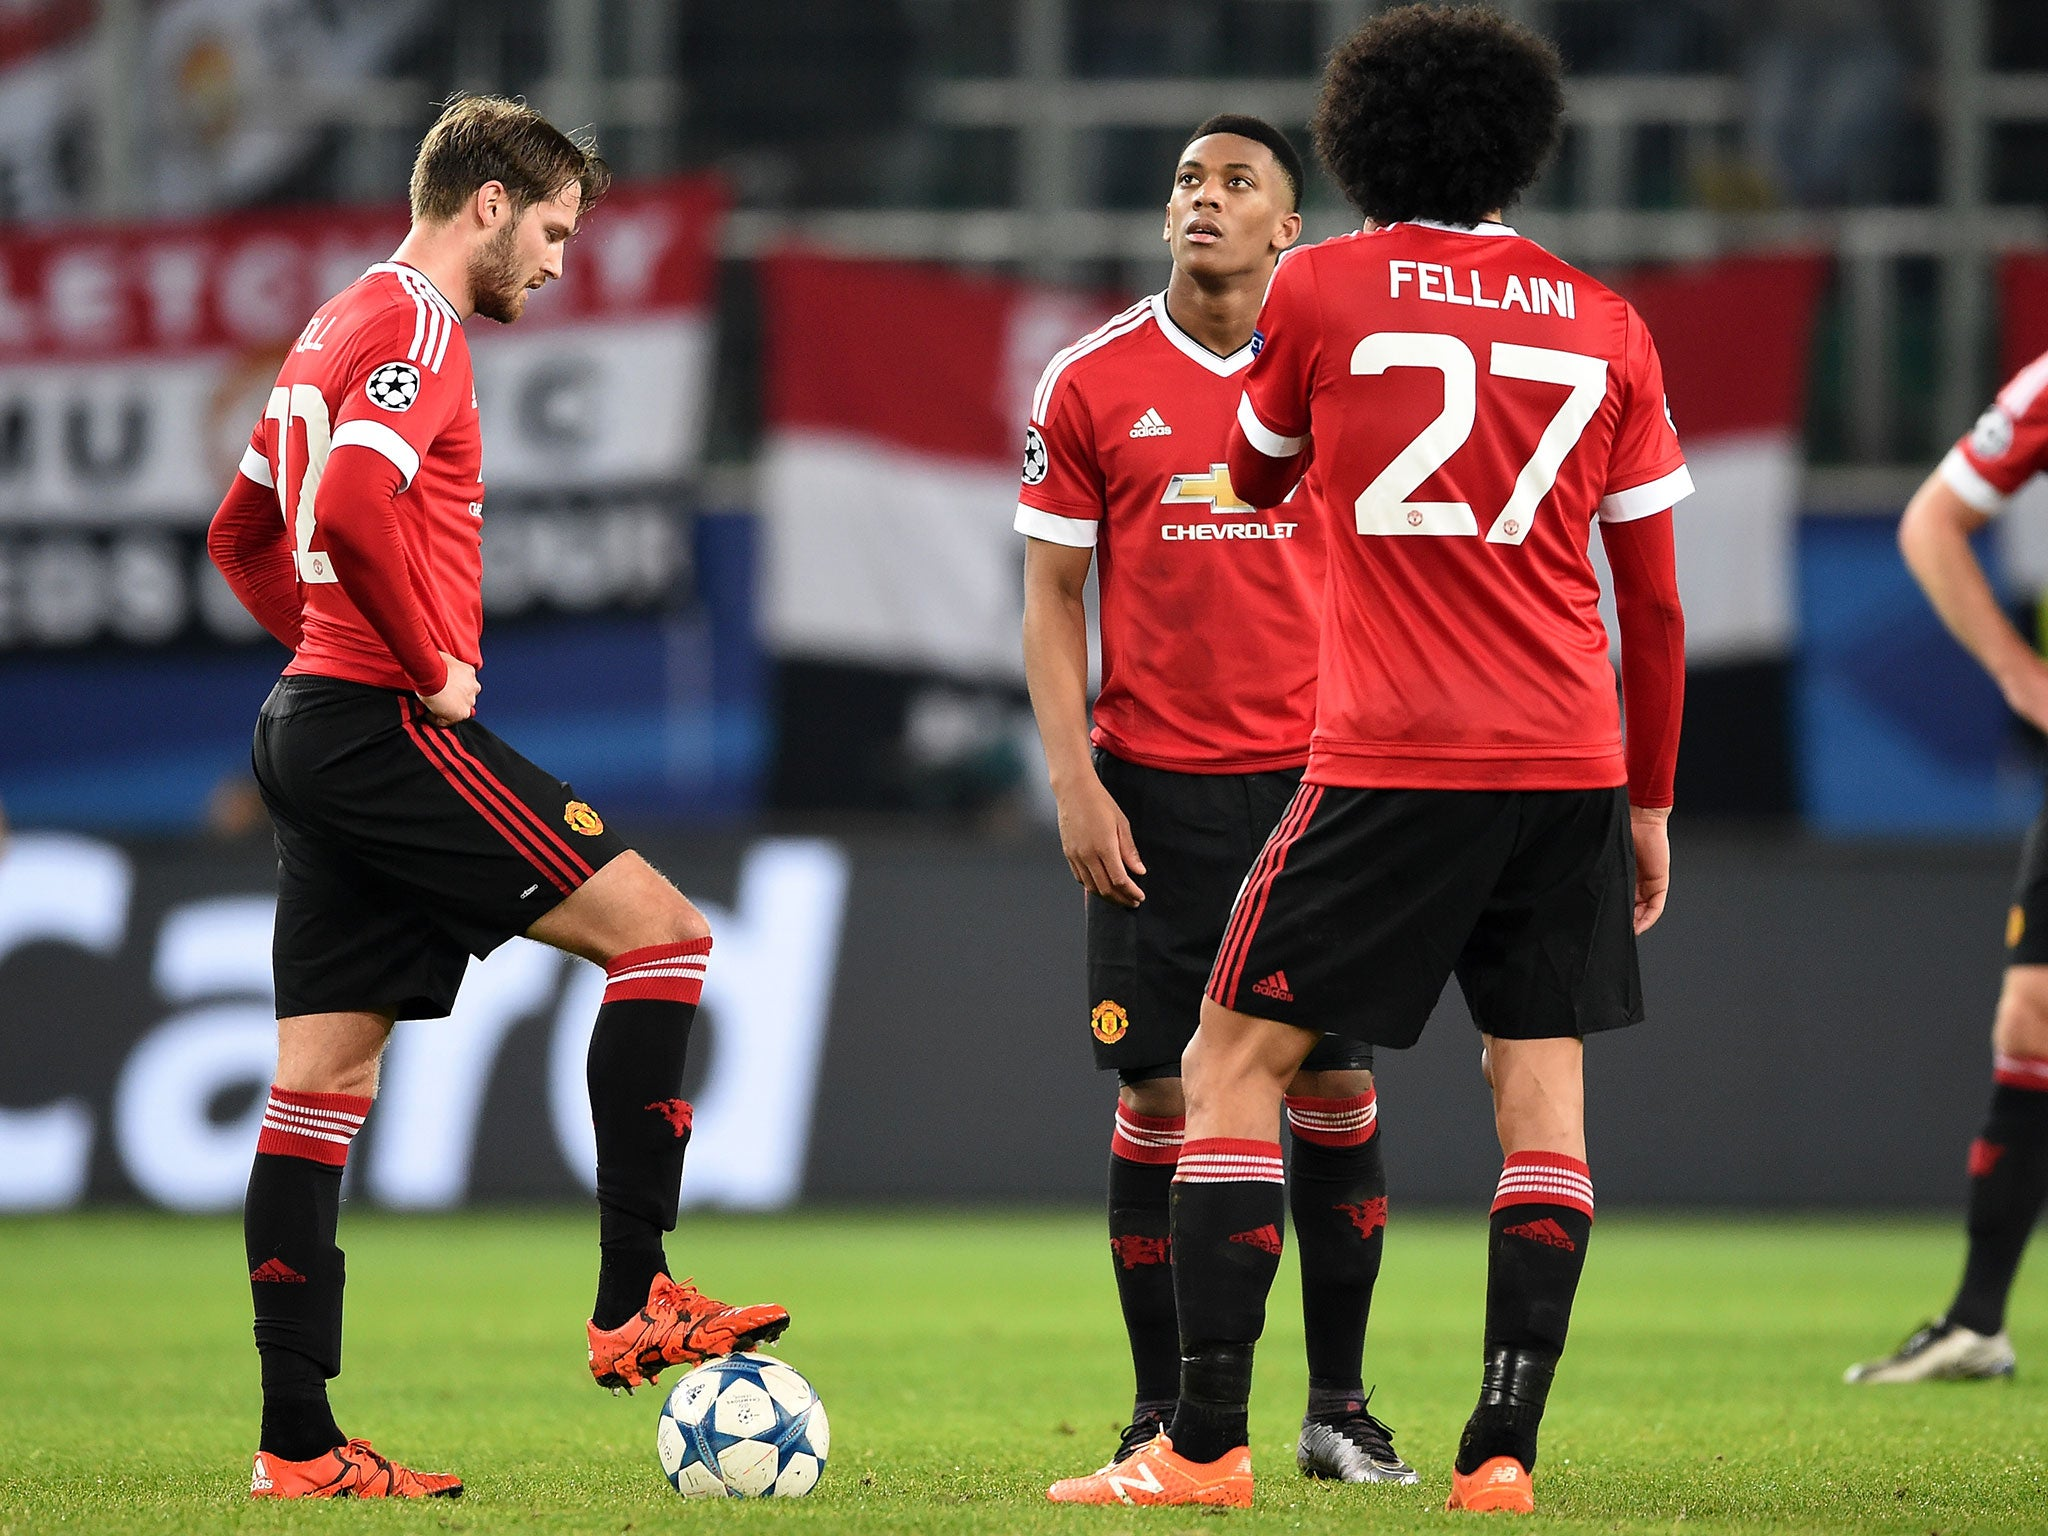 an analysis of the sports brand of manchester united Despite failing to qualify for the champions league, manchester united have the highest brand index value in the premier league, according to brand analytics group brandtix louis van gaal's side.